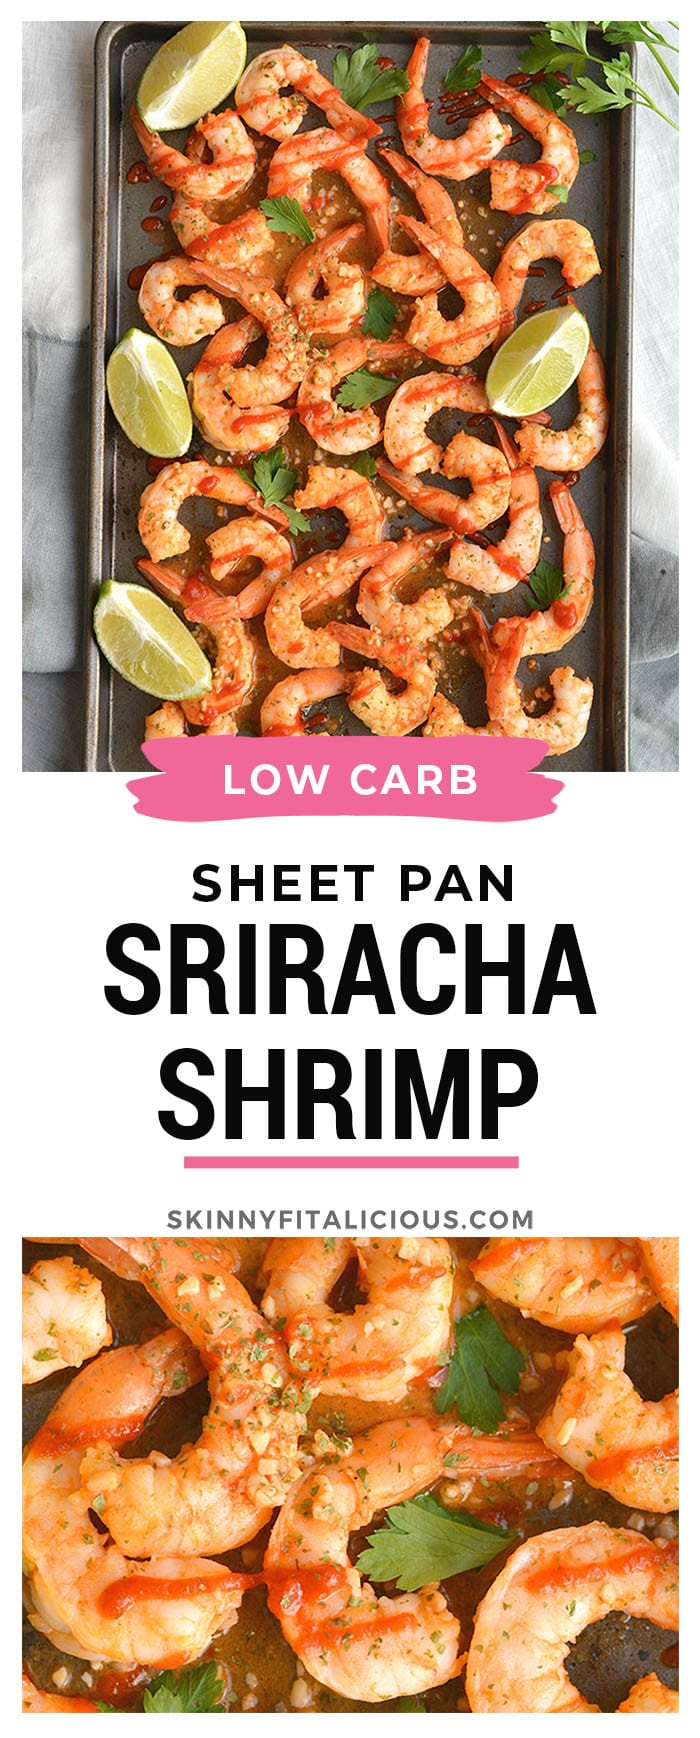 Spicy Sriracha Shrimp made two ways! Tender shrimp tossed in garlic, lime and Sriracha then cooked to perfection. A low carb,Gluten Free and Paleo meal made in less than 15 minutes!Gluten Free + Low Calorie + Paleo + Low Carb